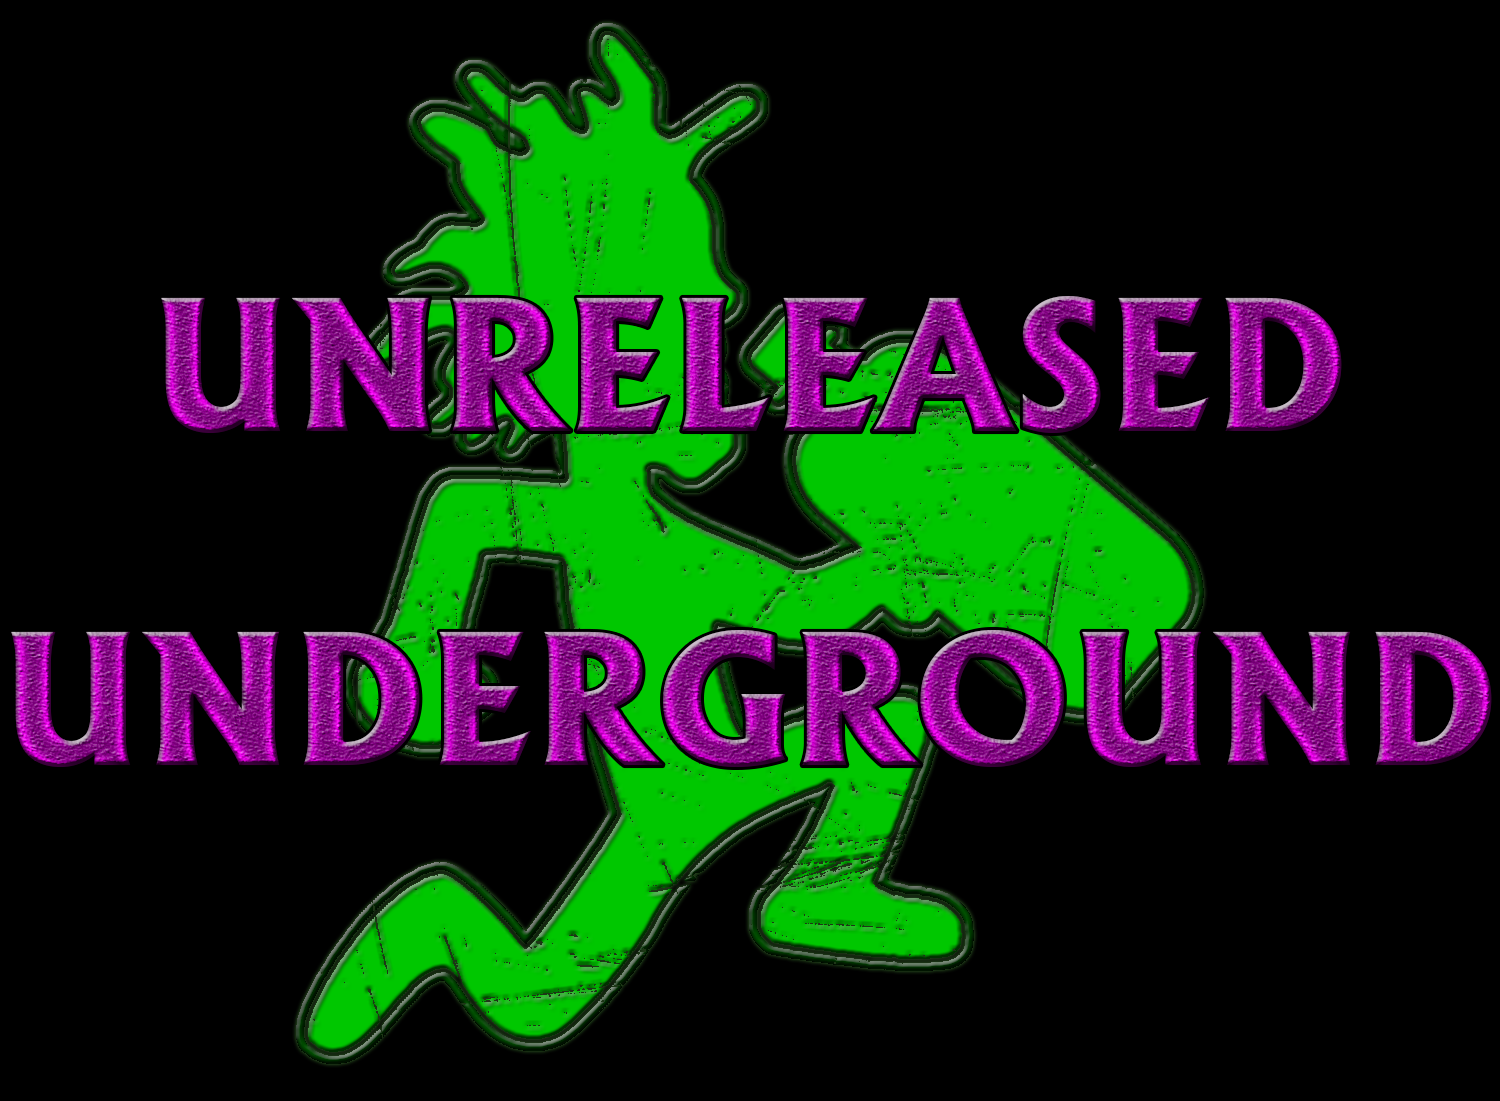 Unreleased Underground: An Exclusive Section of Rare Songs on